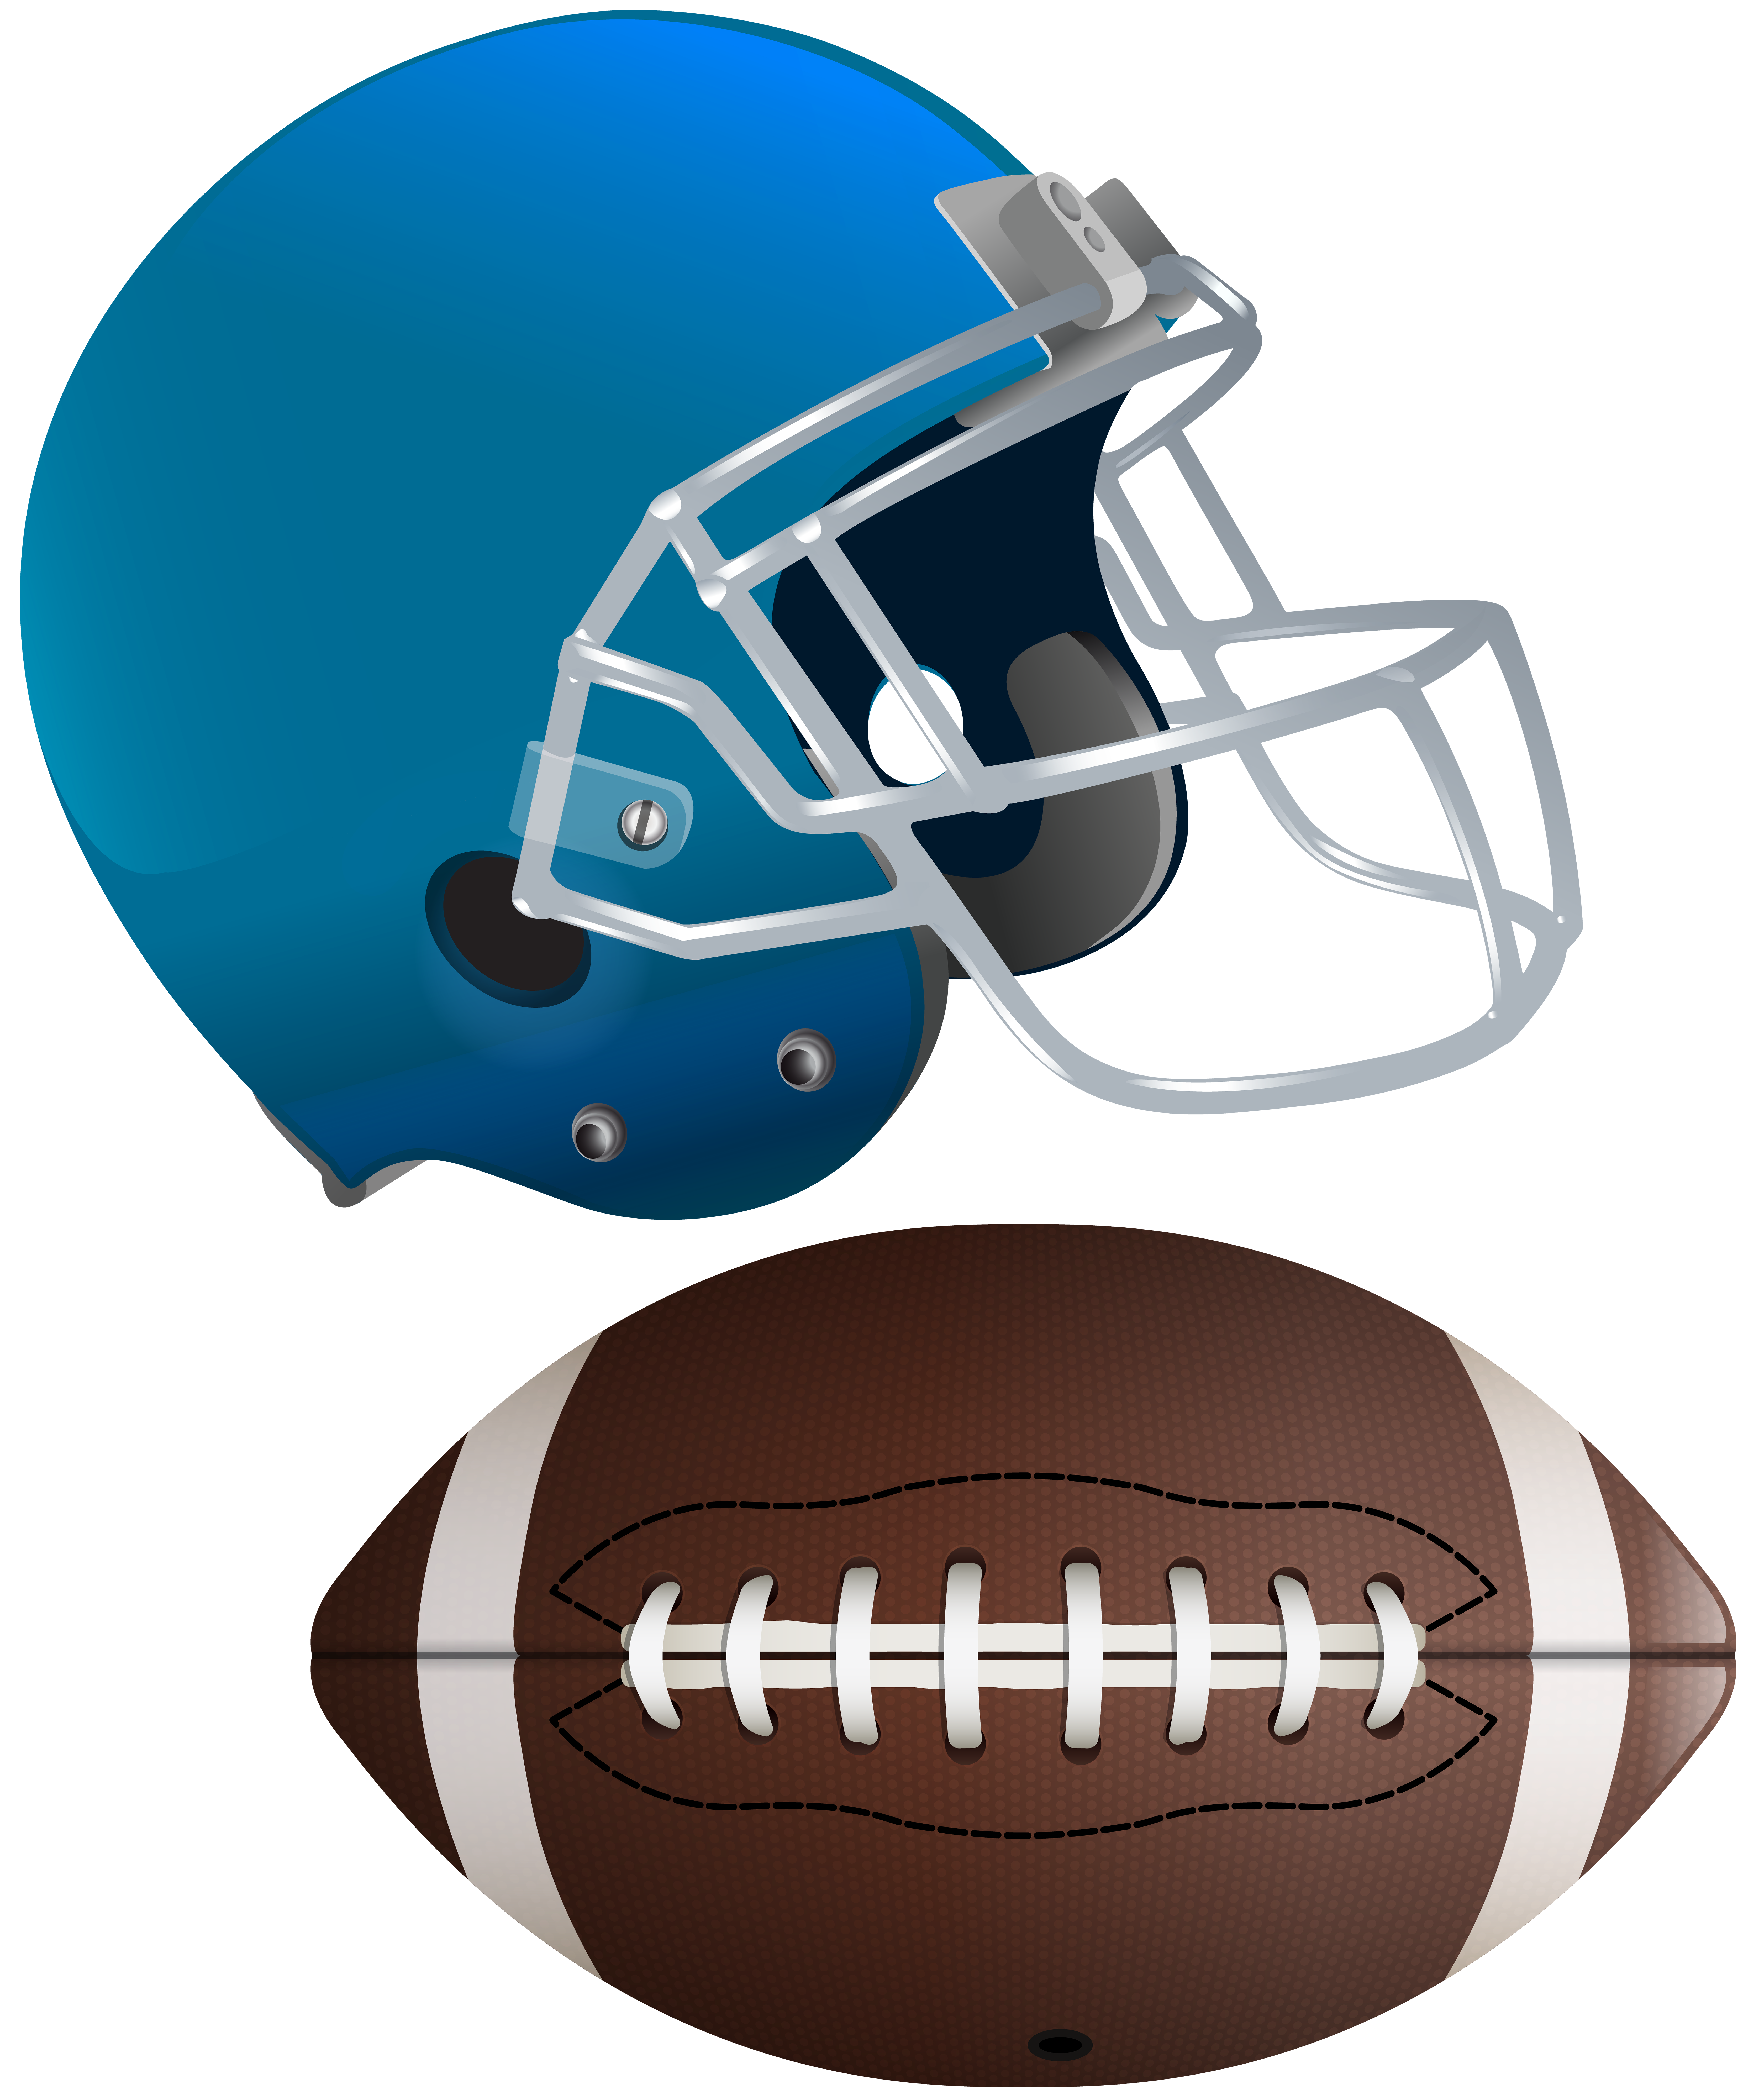 6702x8000 American Football Ball And Helmet Transparent Clip Art Image